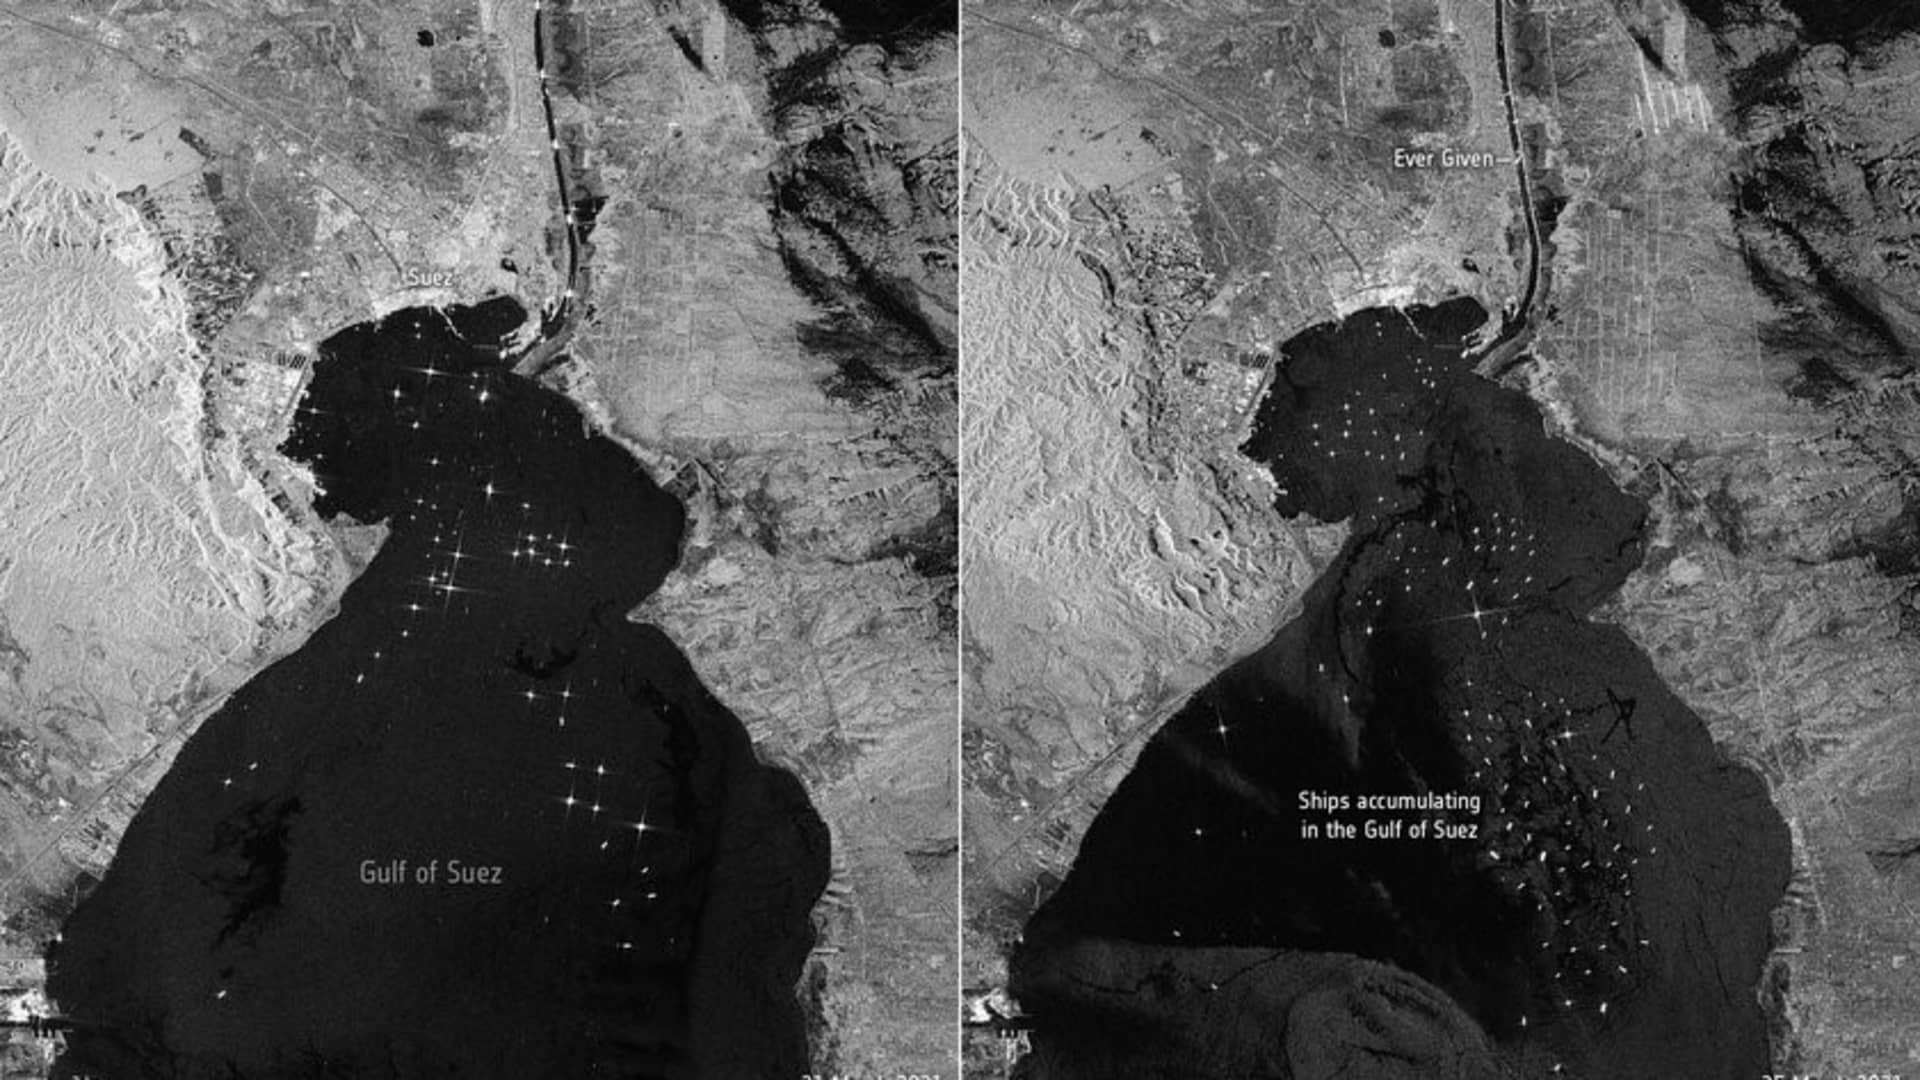 Imagery captured by the Copernicus Sentinel-1 satellite on March 21 and March 25 gives a side-by-side comparison of the shipping traffic in the Gulf of Suez.